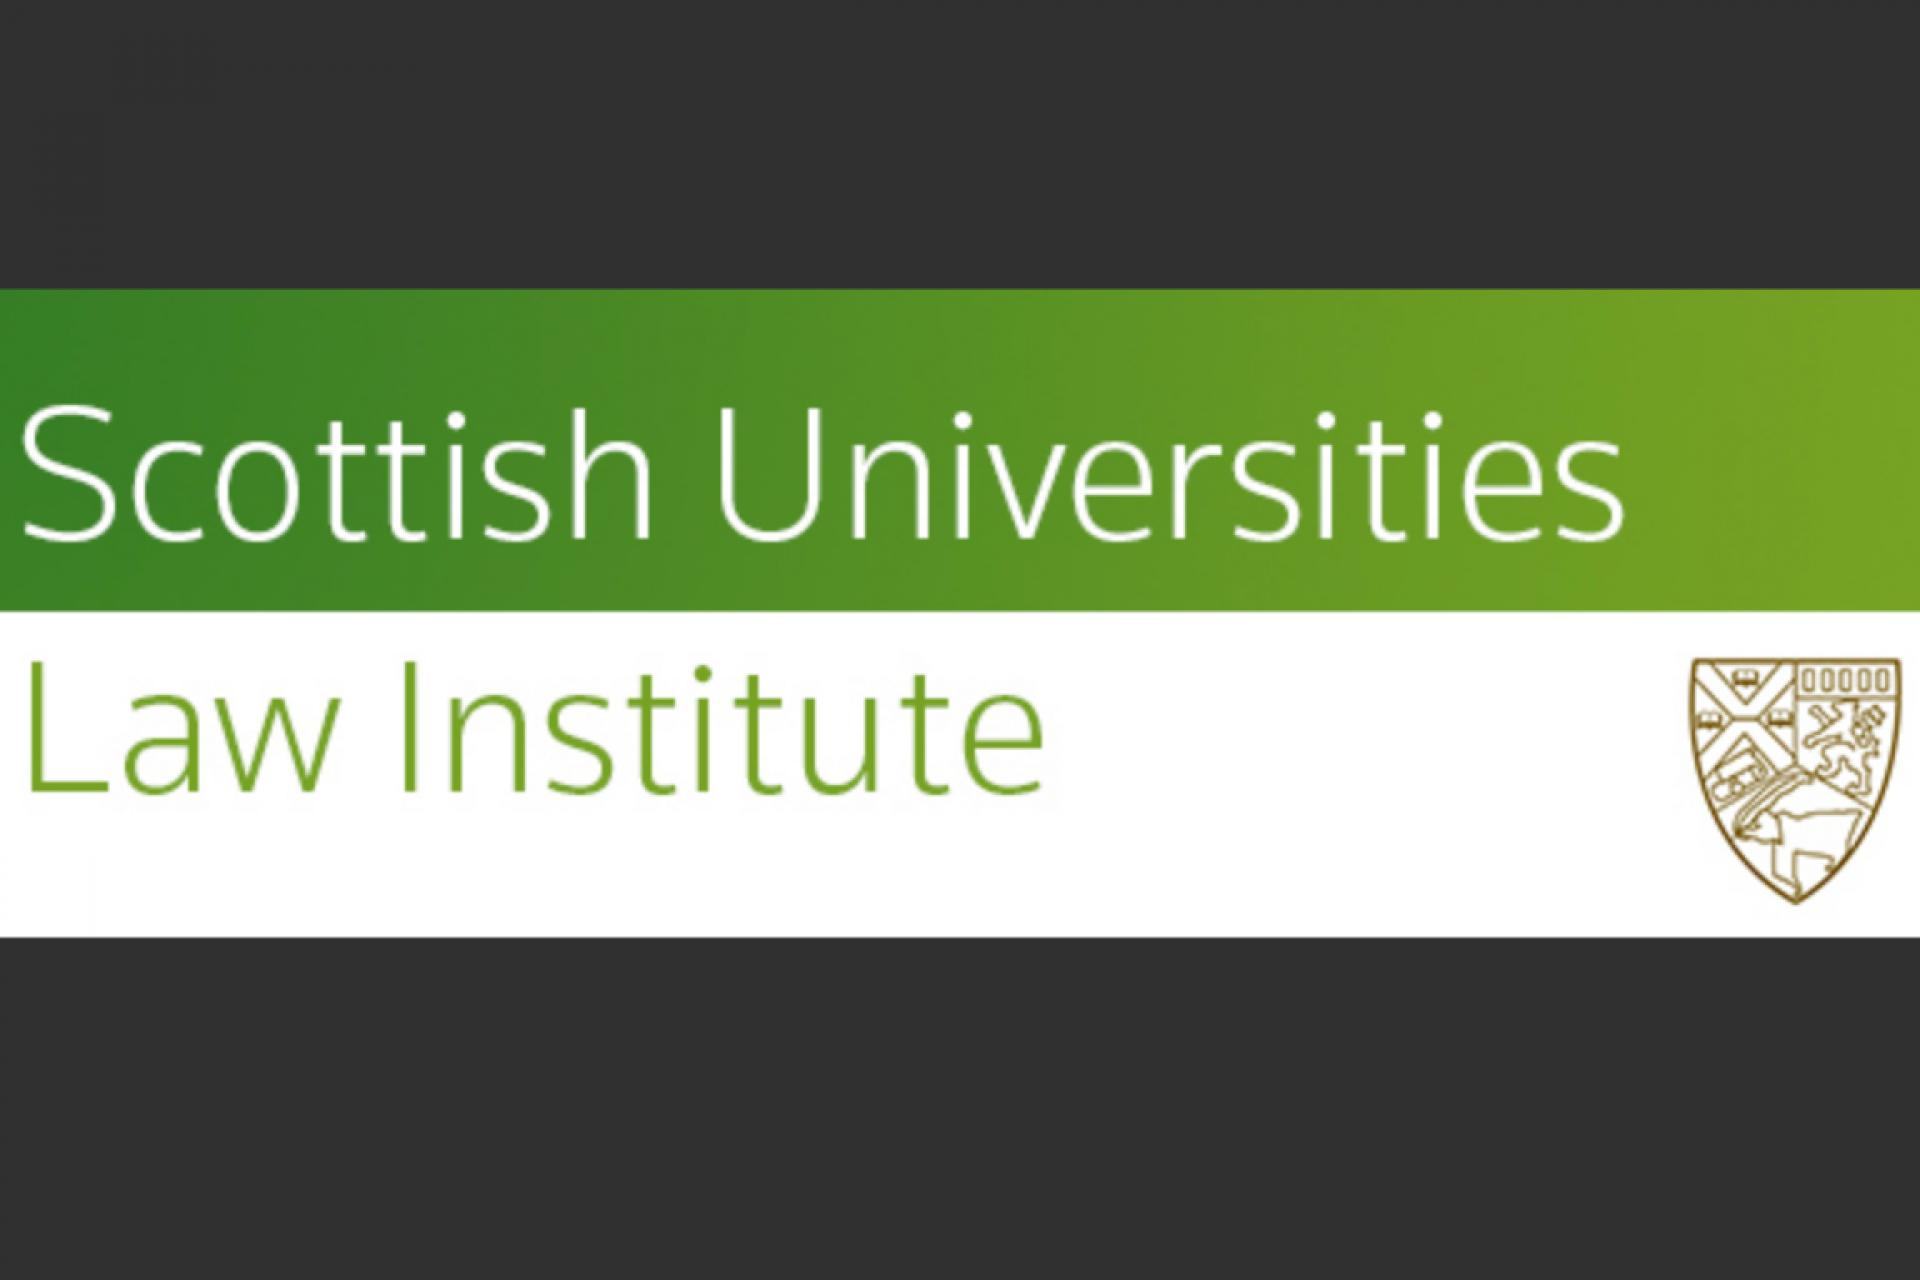 Scottish Universities Law Institute logo